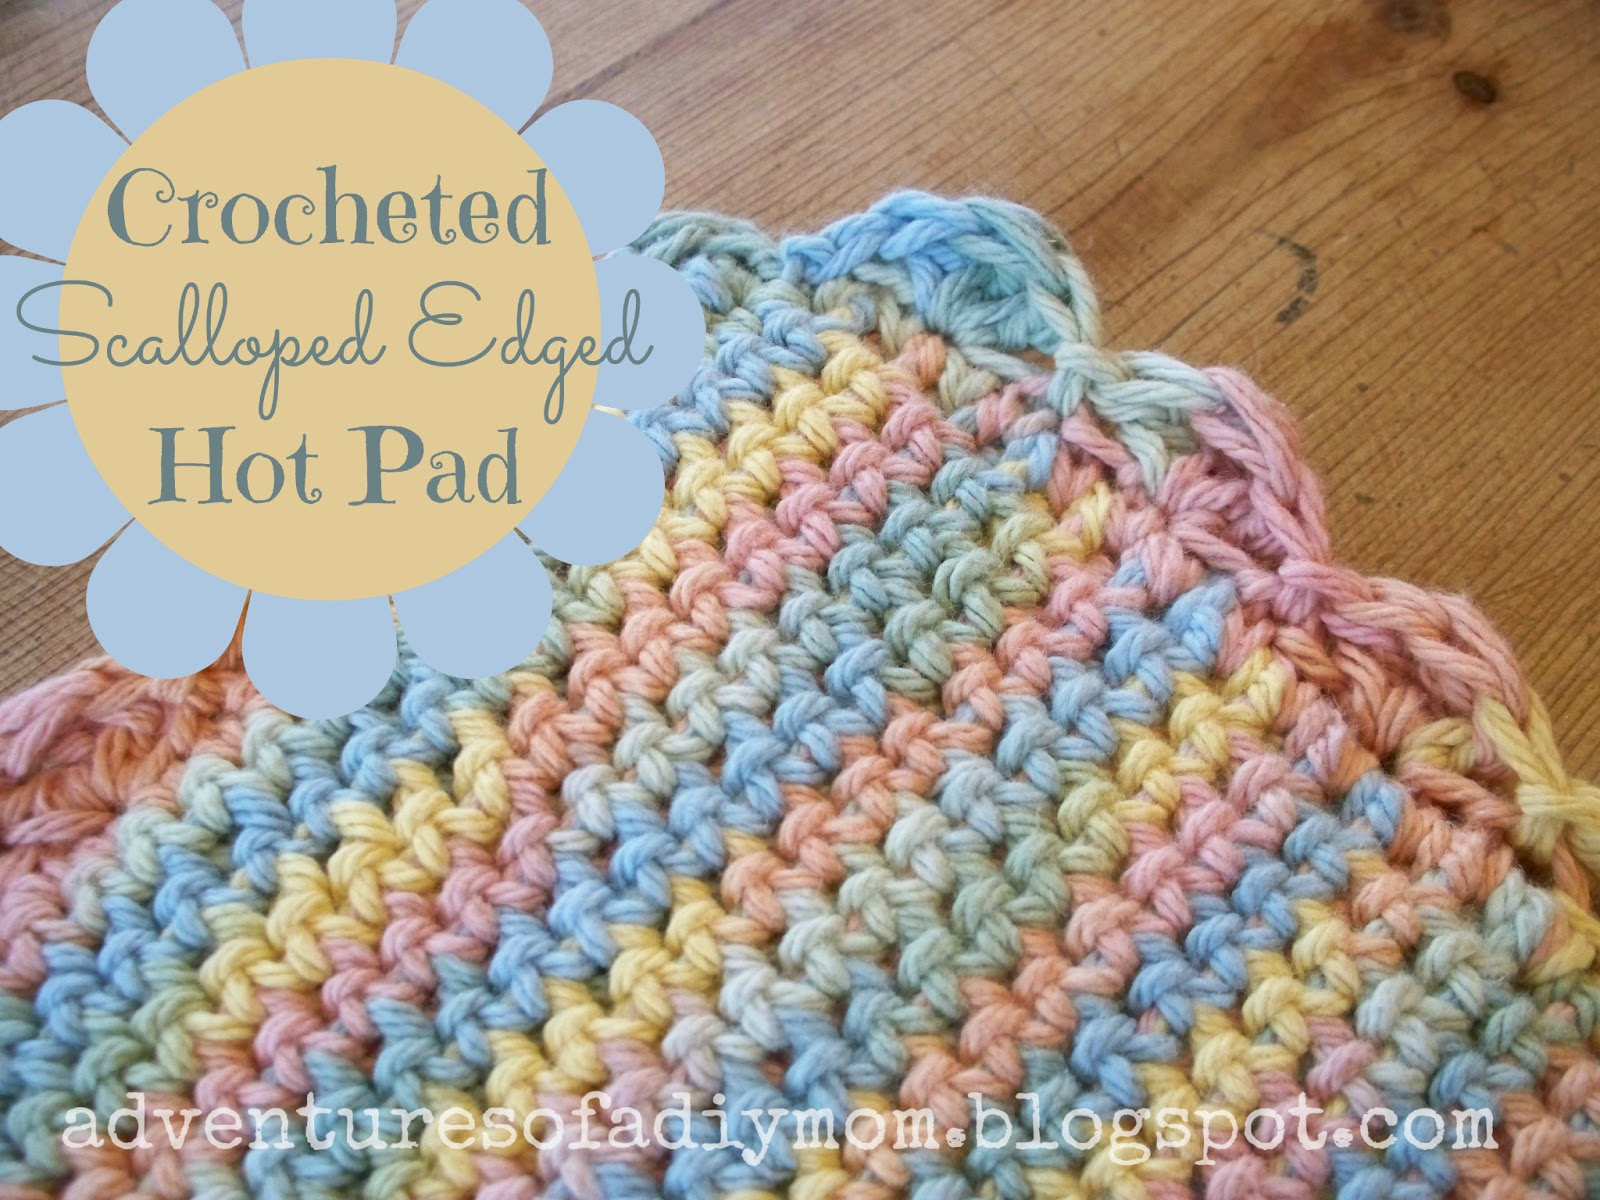 Crocheted Scalloped Edged Hot Pad - Adventures of a DIY Mom